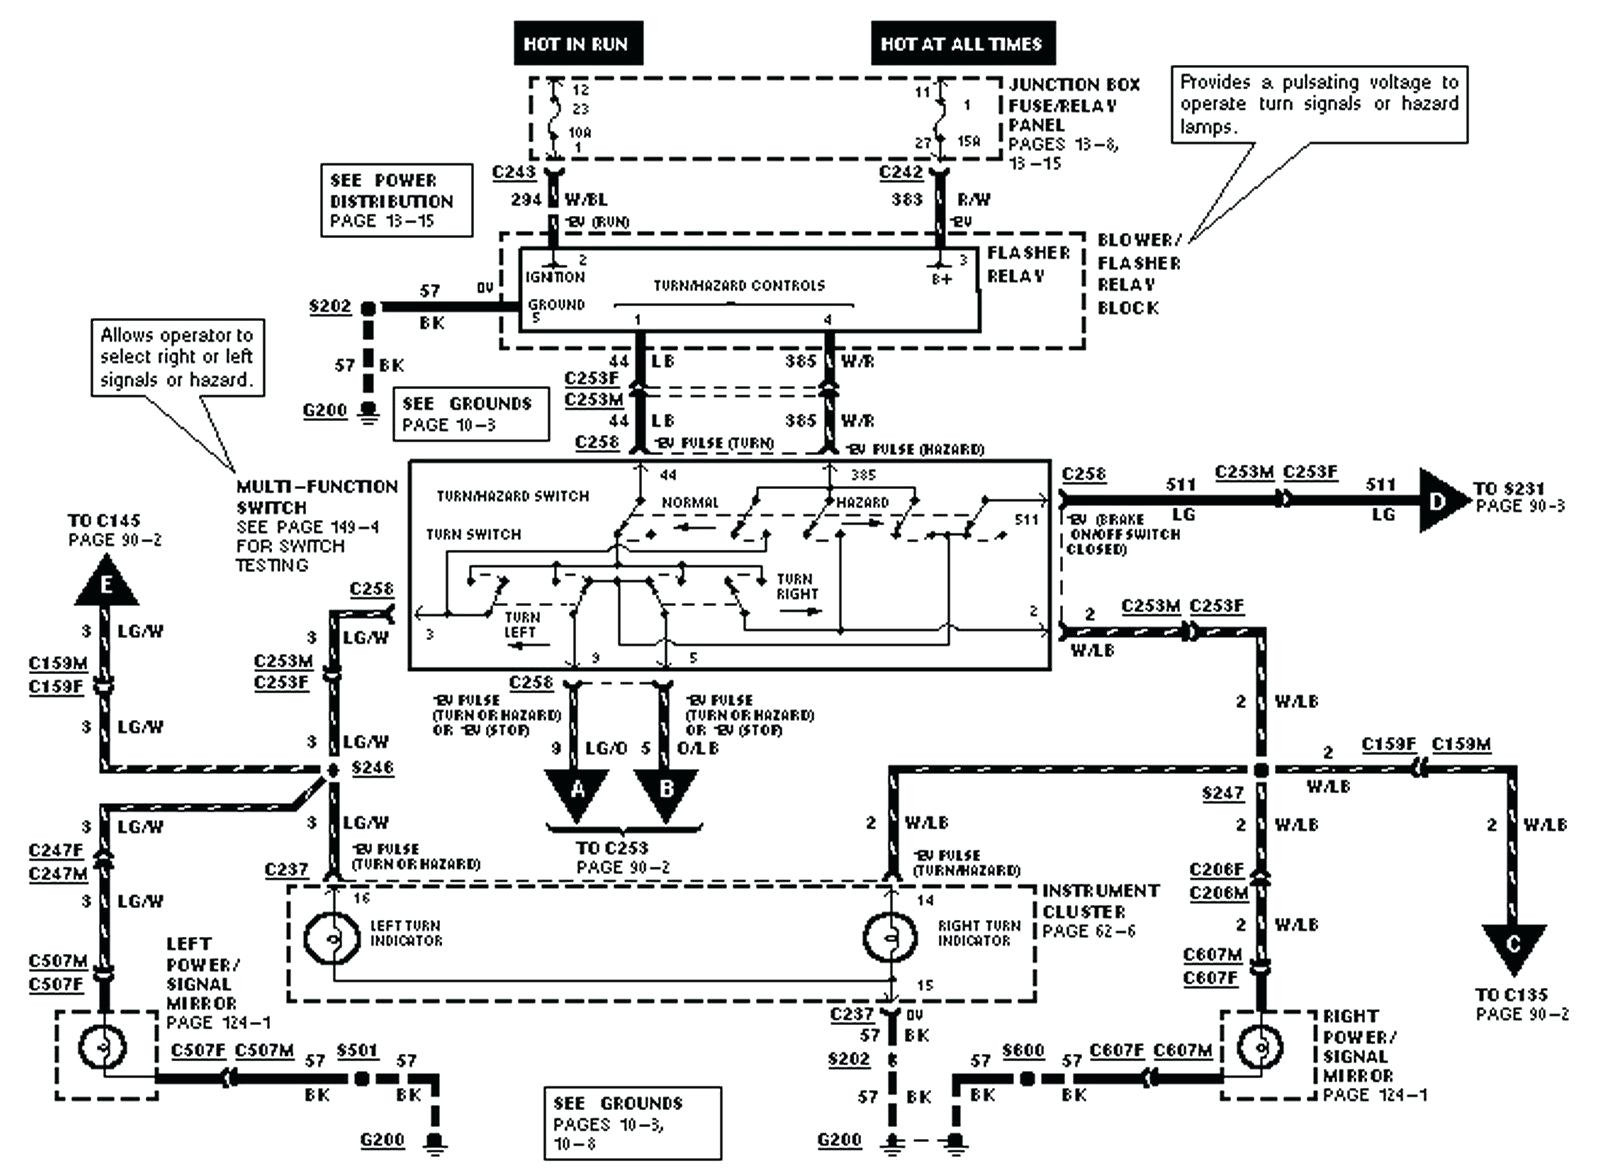 Ford 2005 4 2 Spark Plug Wire Diagram | Wiring Library - 1997 Ford F150 Spark Plug Wiring Diagram